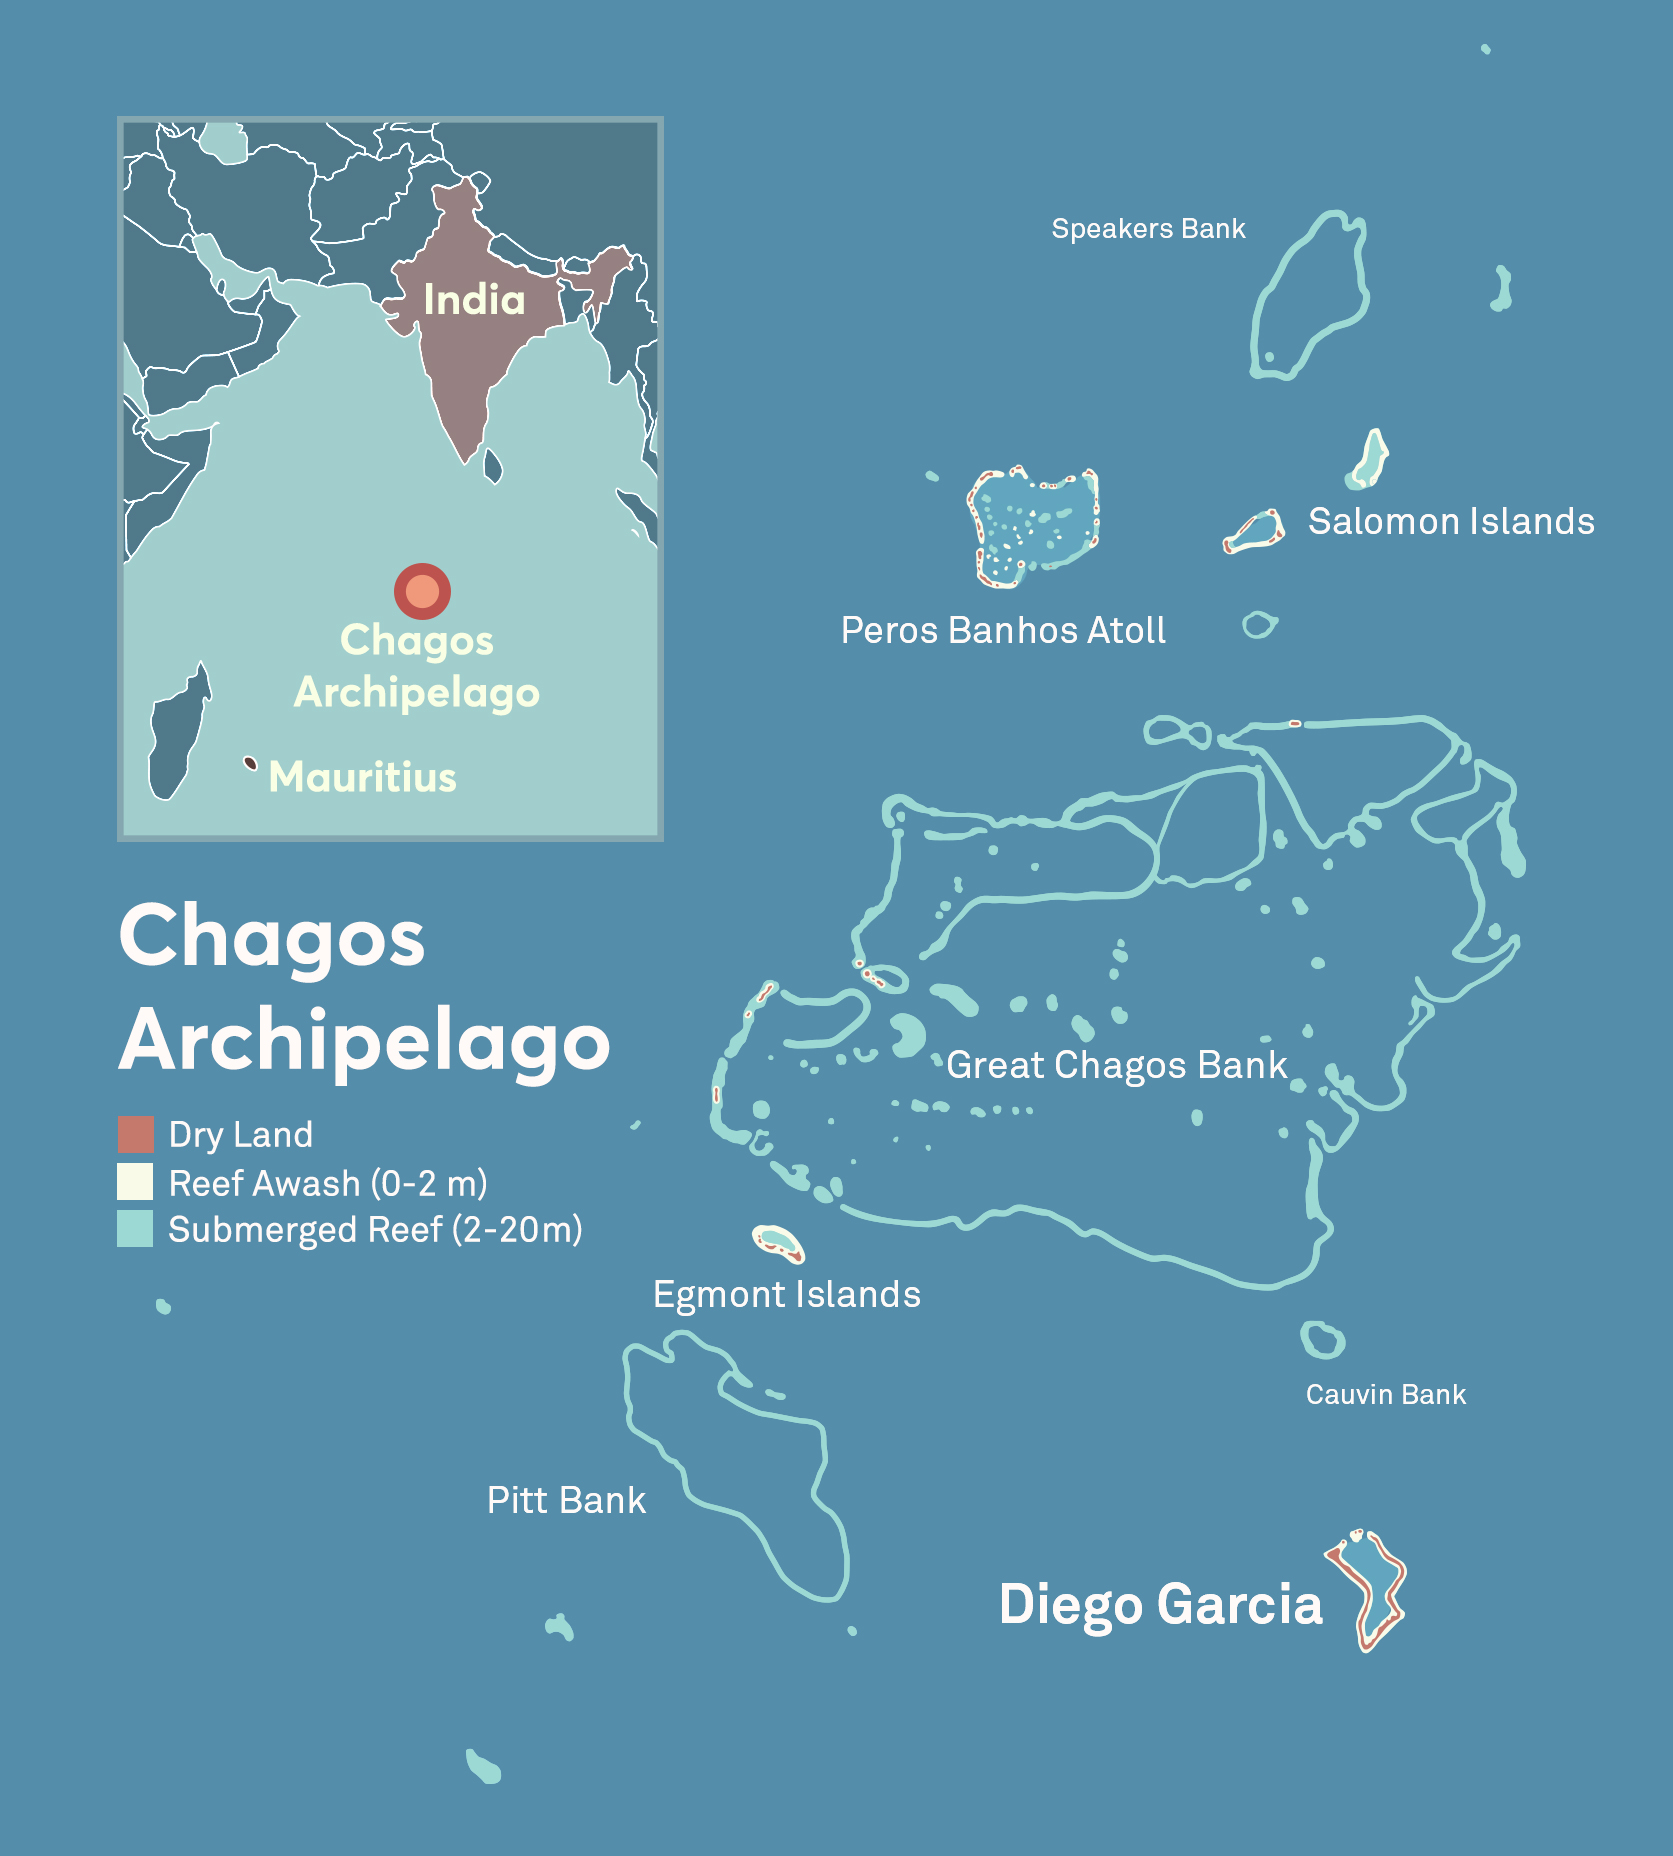 A map of the Chagos Archipelago or Chagos Islands, and its proximity to India and Mauritius.